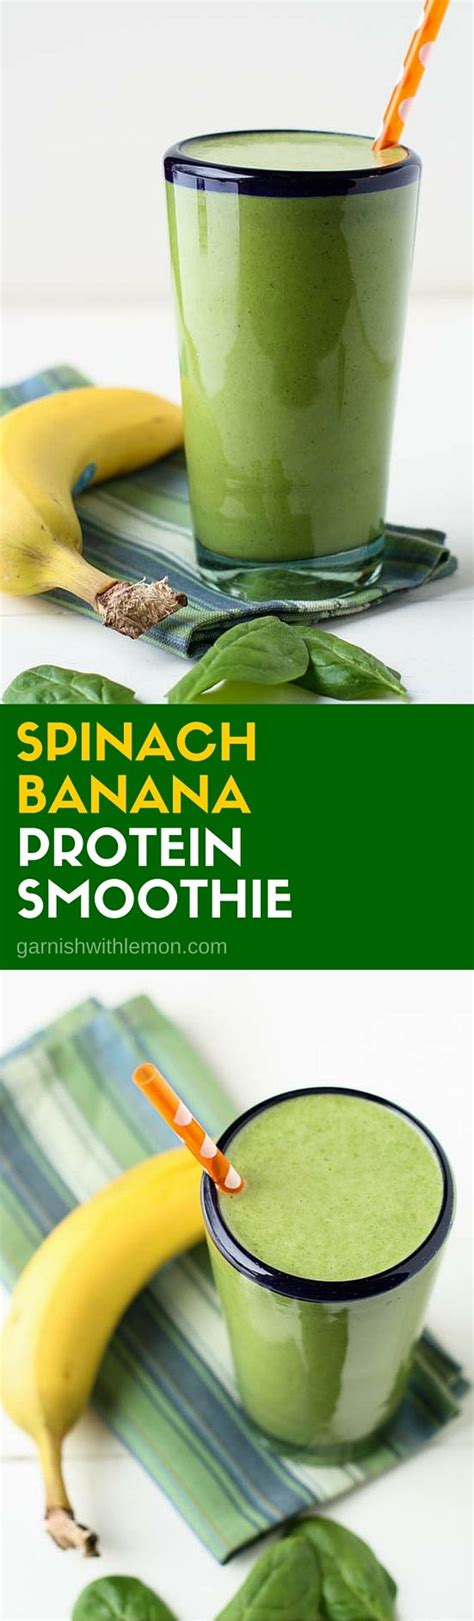 protein in spinach spinach banana protein smoothie